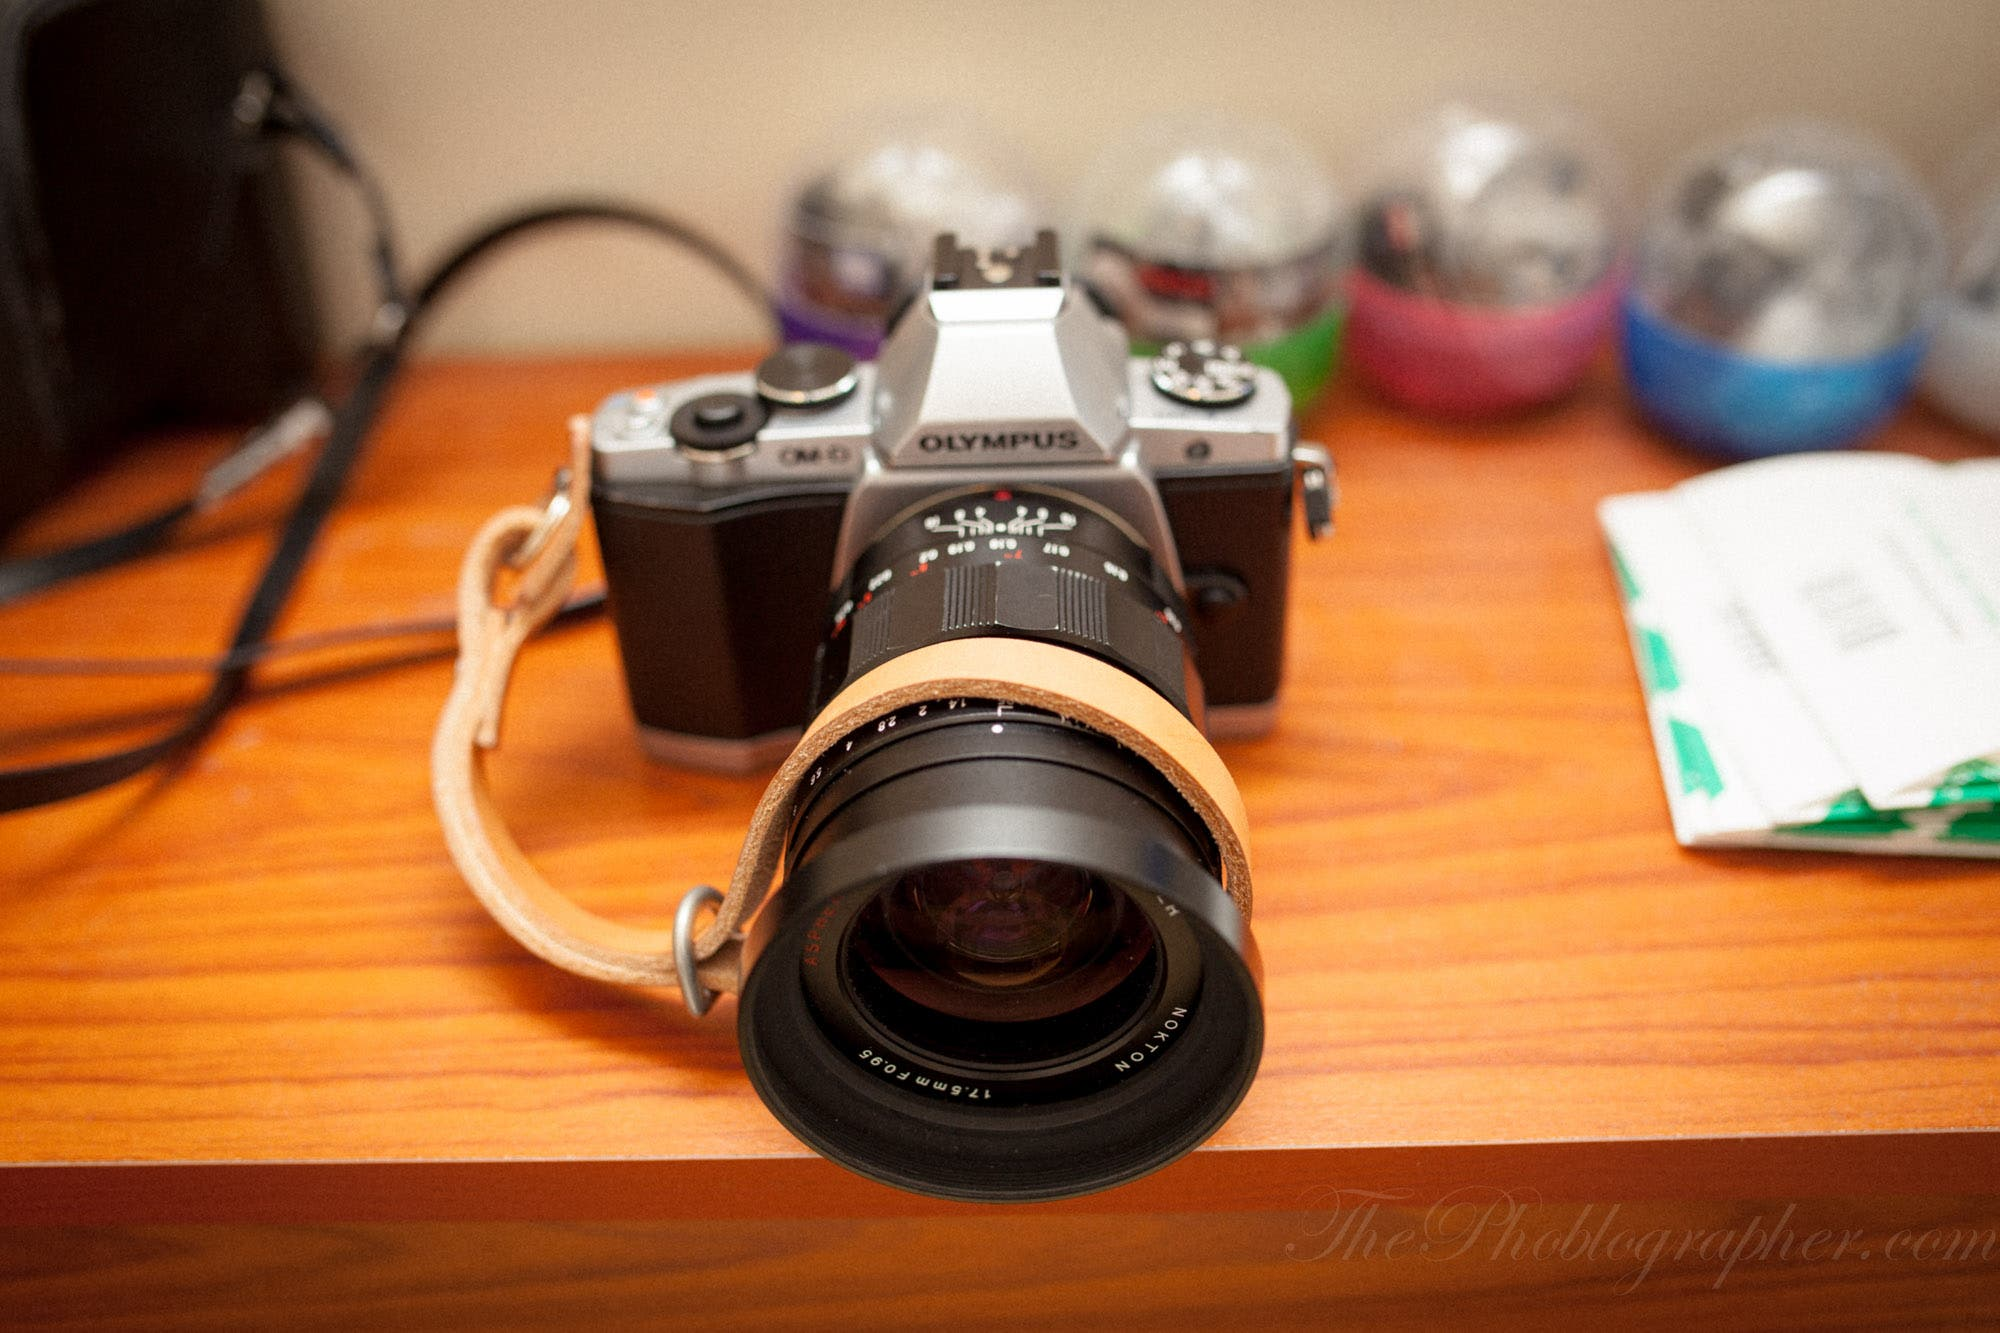 Review: Tap and Dye Legacy Wrist Strap (Used on the Olympus OMD EM5)